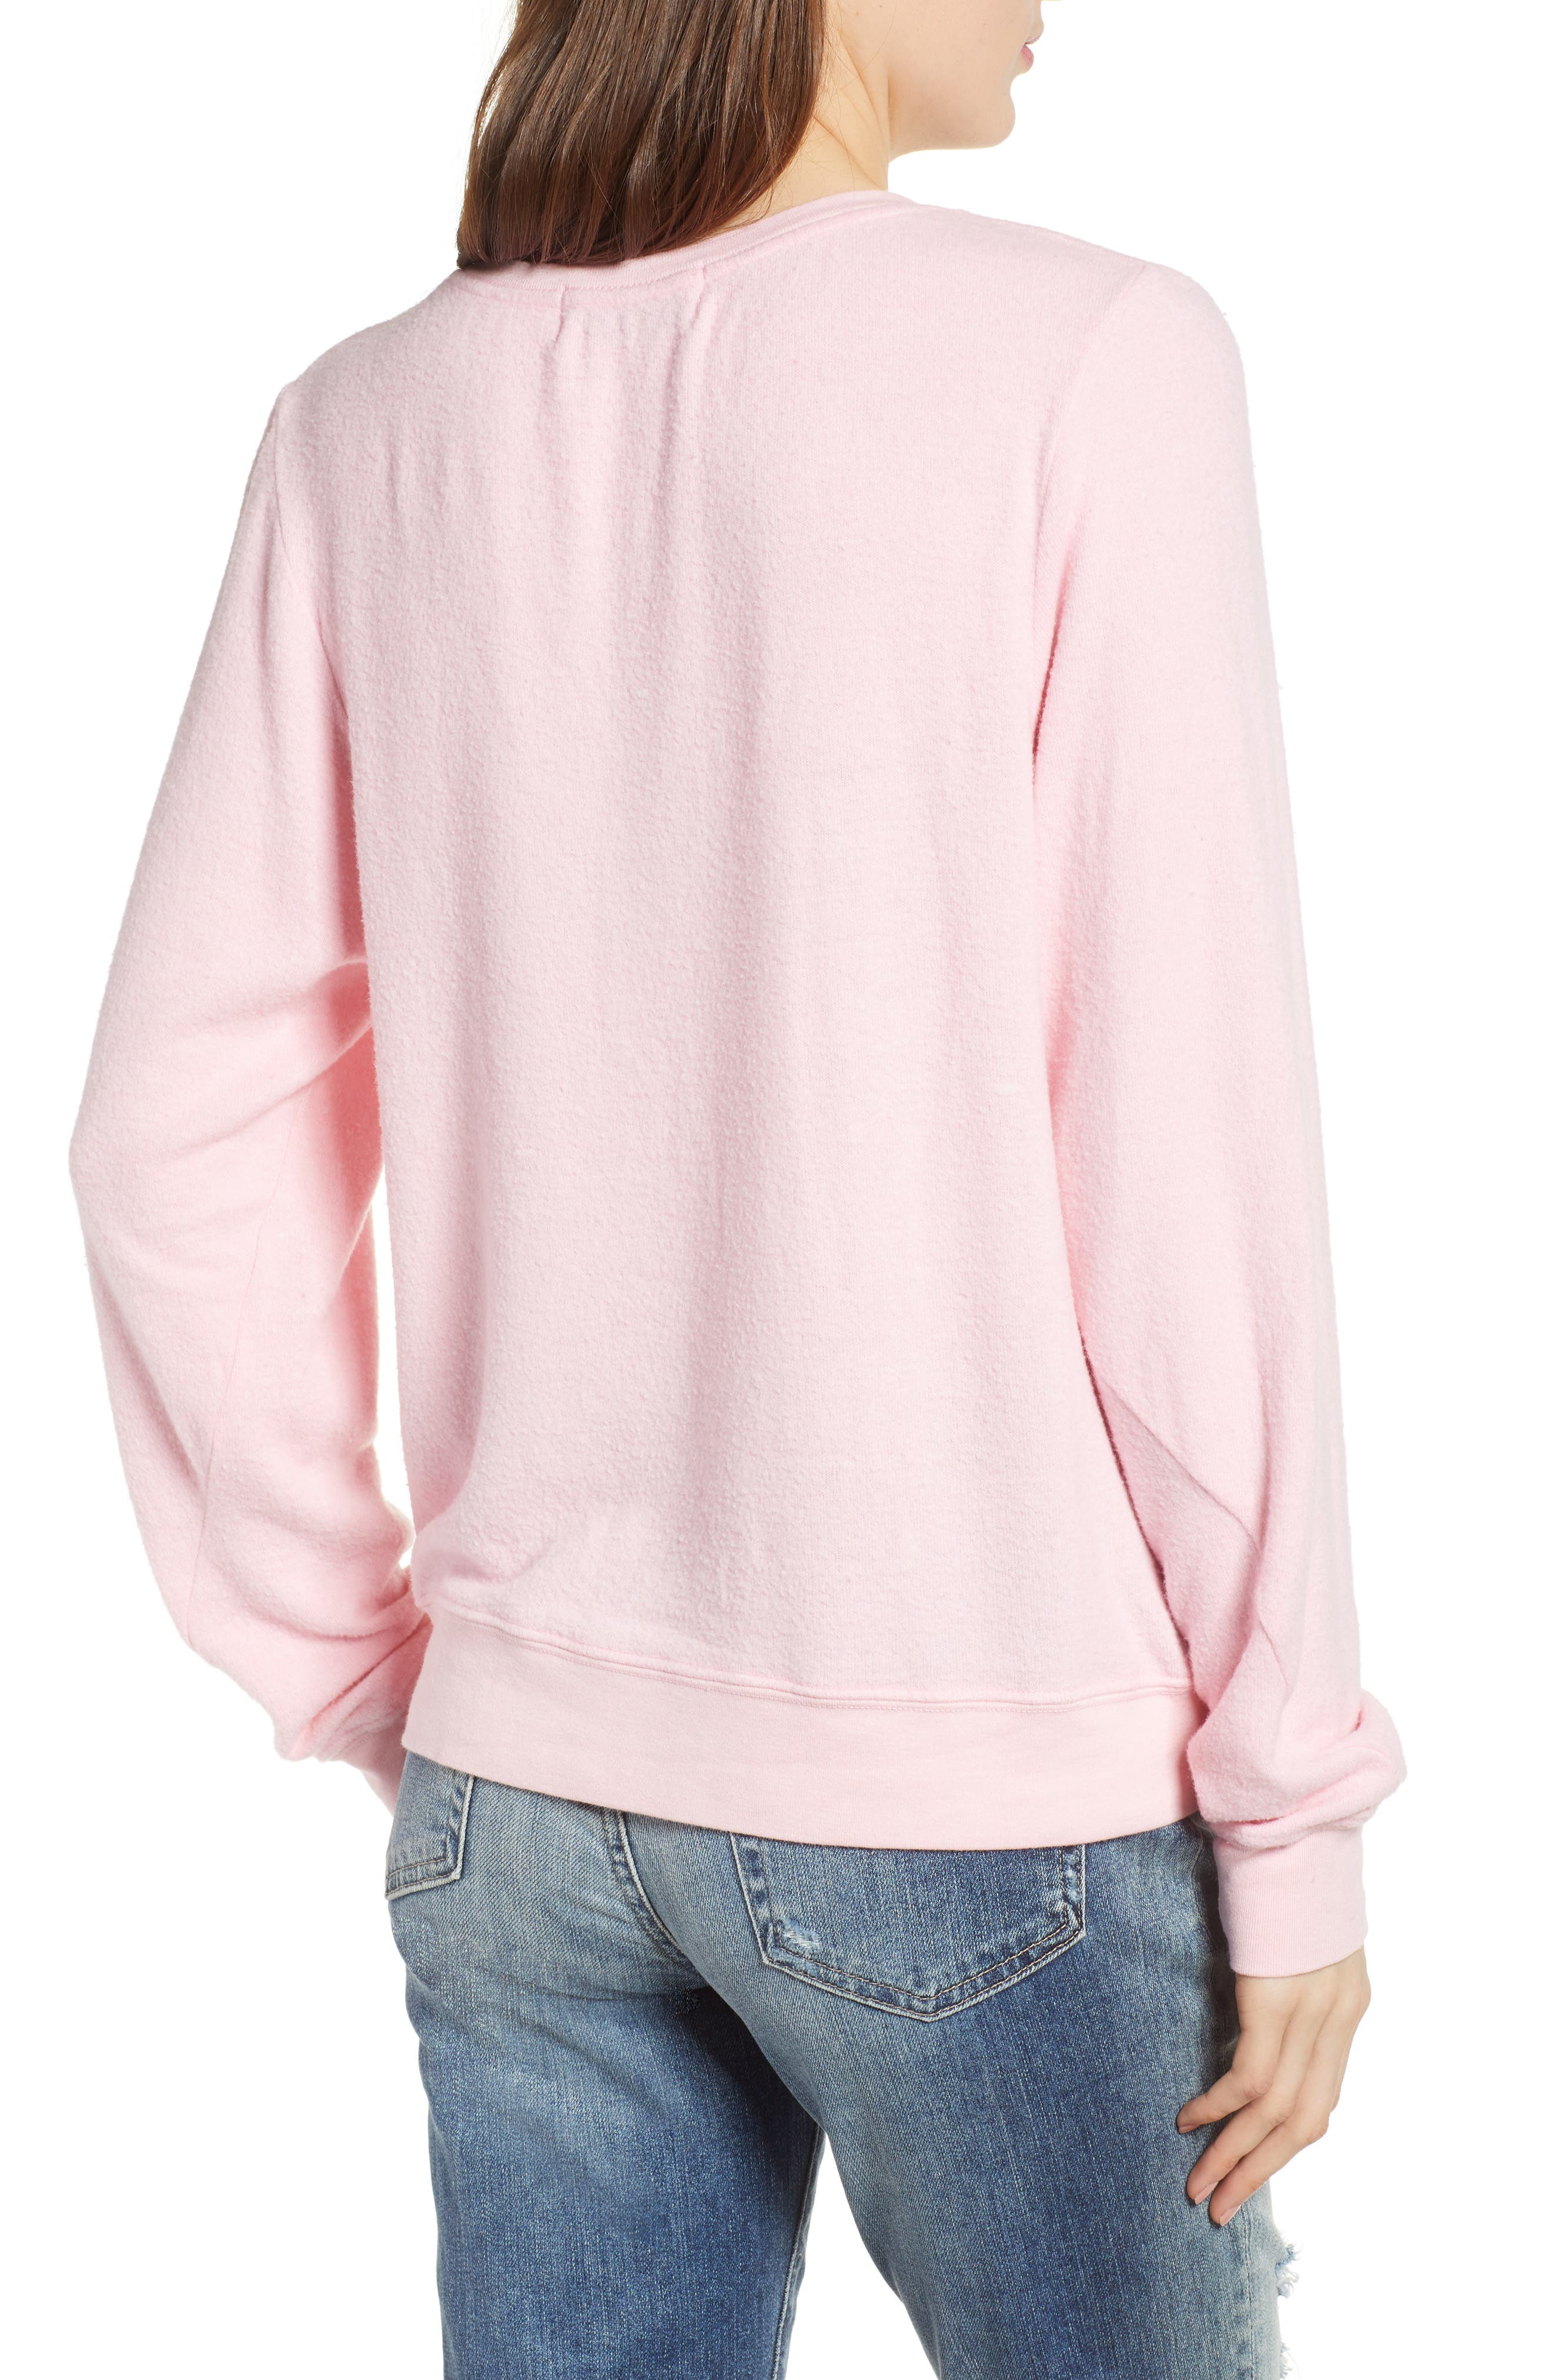 Born to Shop Forced to Work Sweatshirt,                             Alternate thumbnail 2, color,                             Lolita